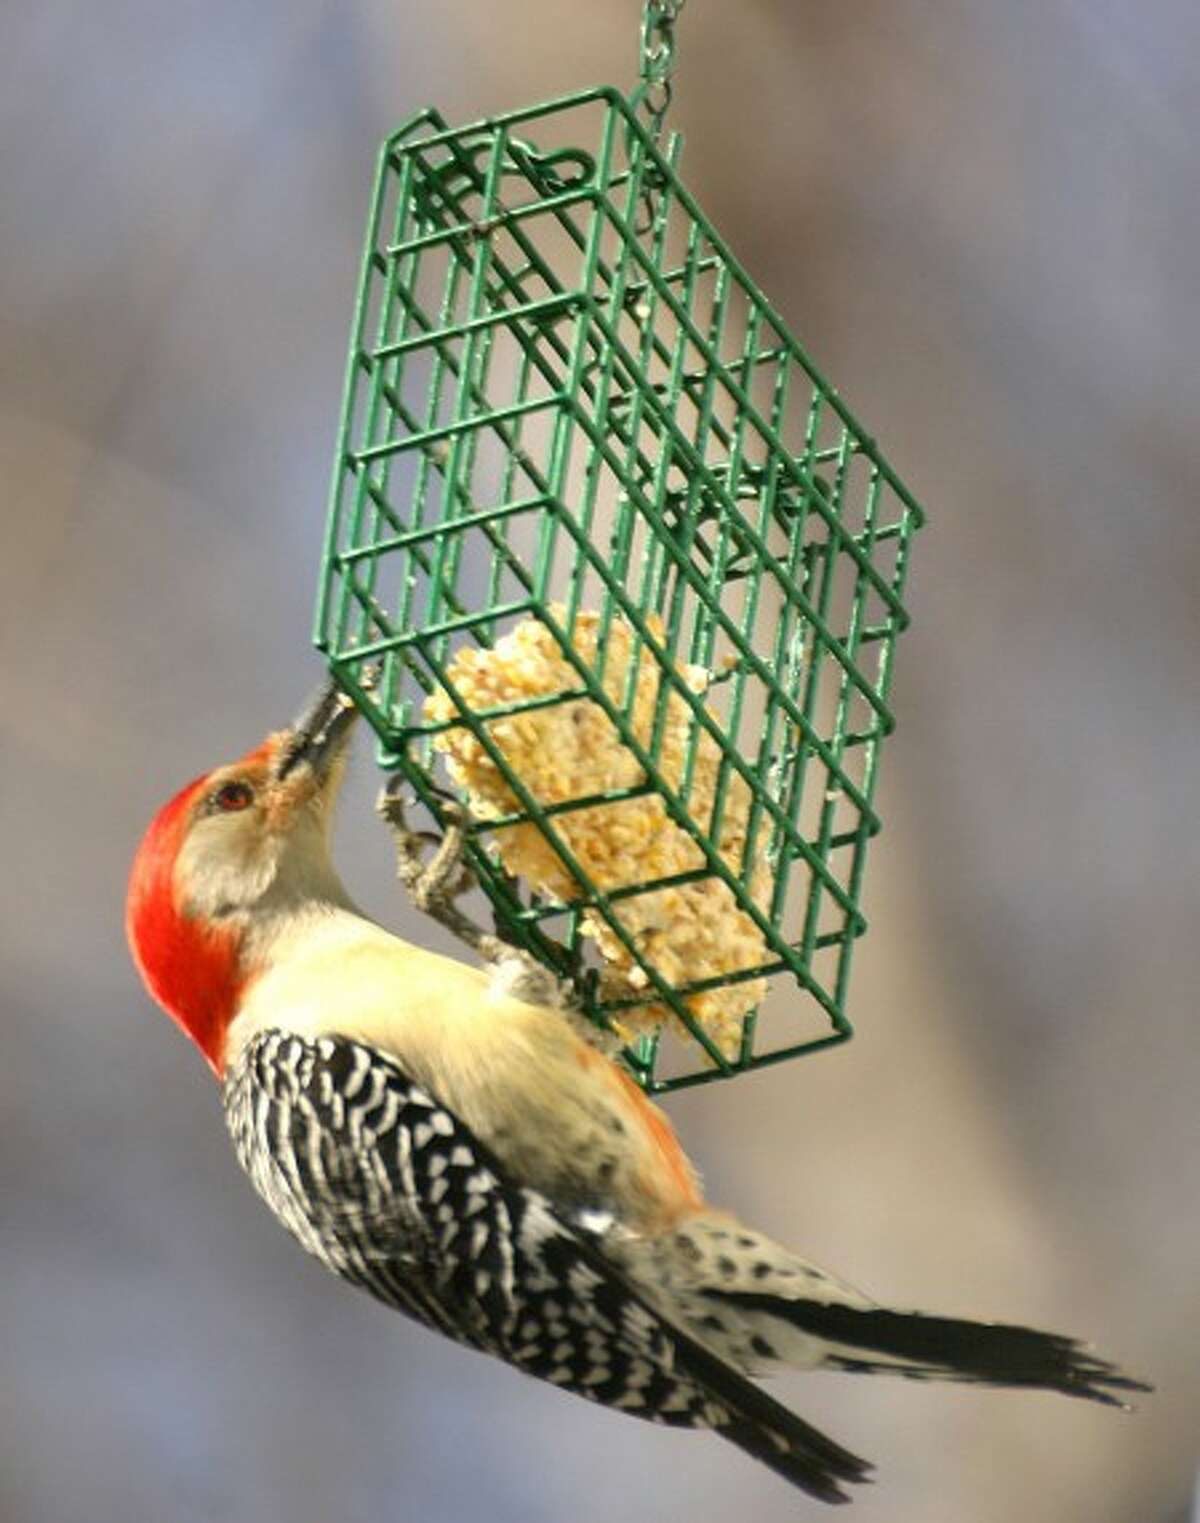 Photos by CHRIS BOSAK Red-bellied woodpeckers have red bellies, but you have to see the bird at the right angle to see it.